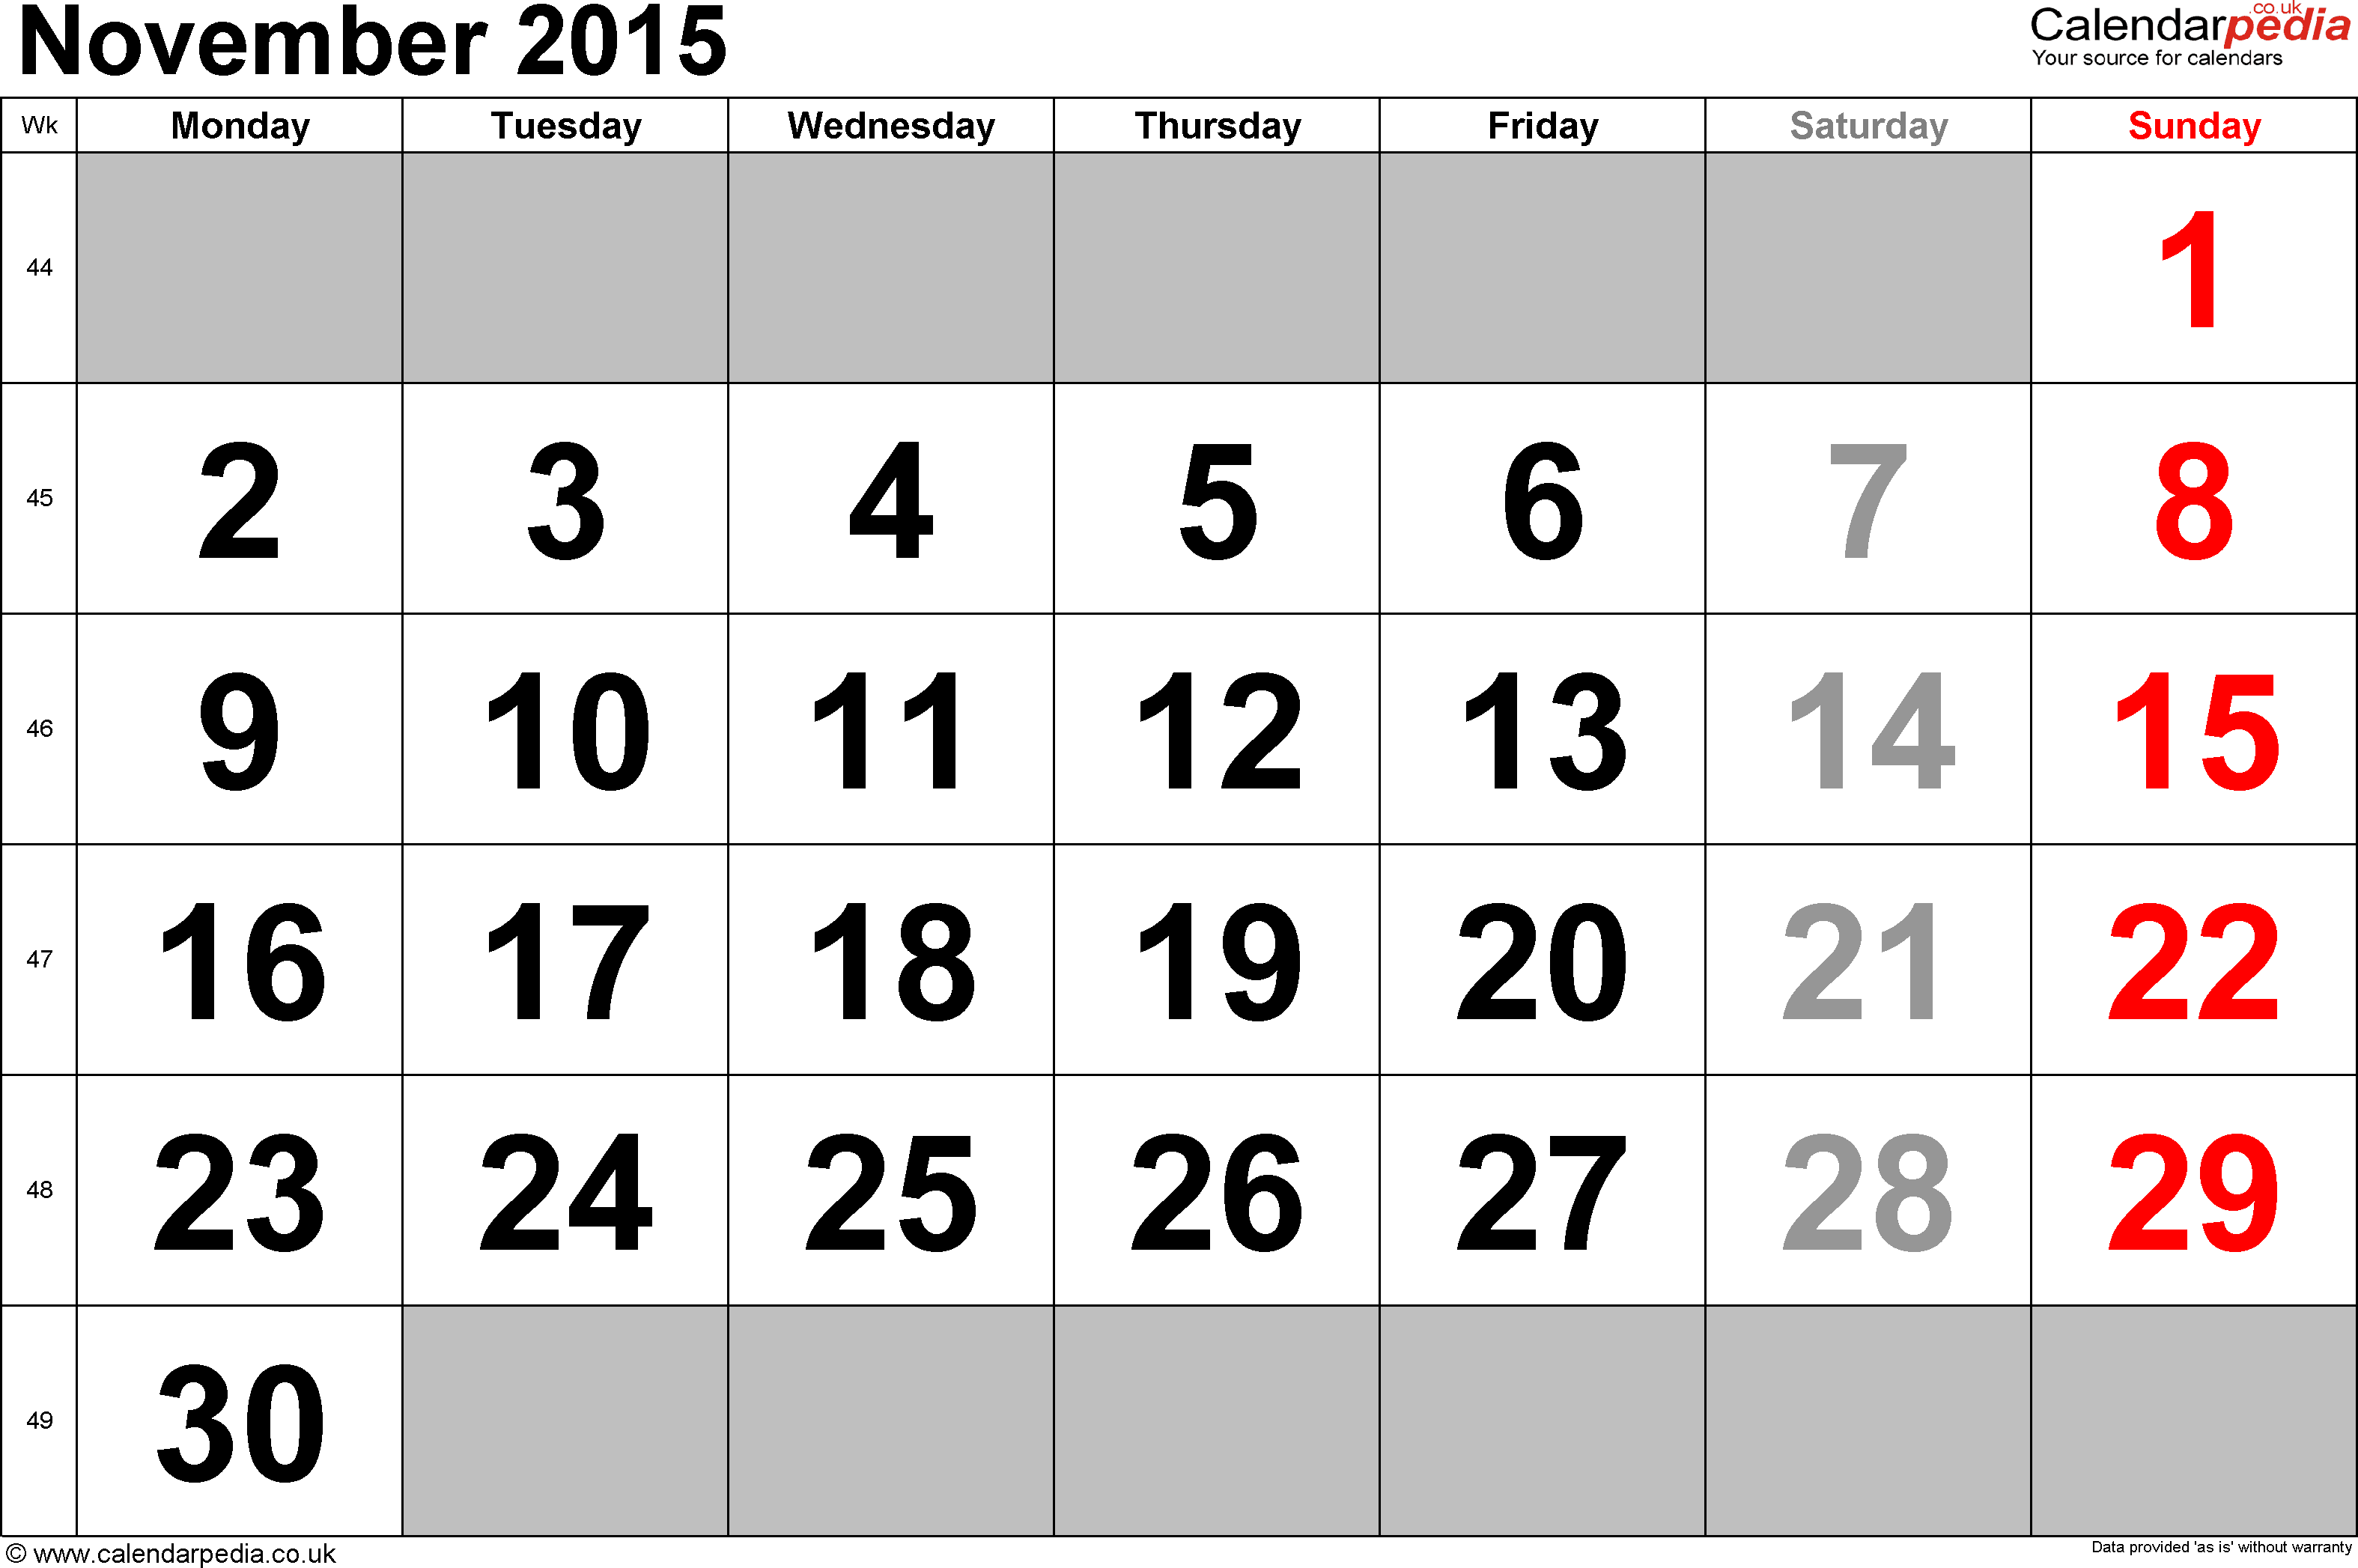 Calendar November 2015, landscape orientation, large numerals, 1 page, with UK bank holidays and week numbers